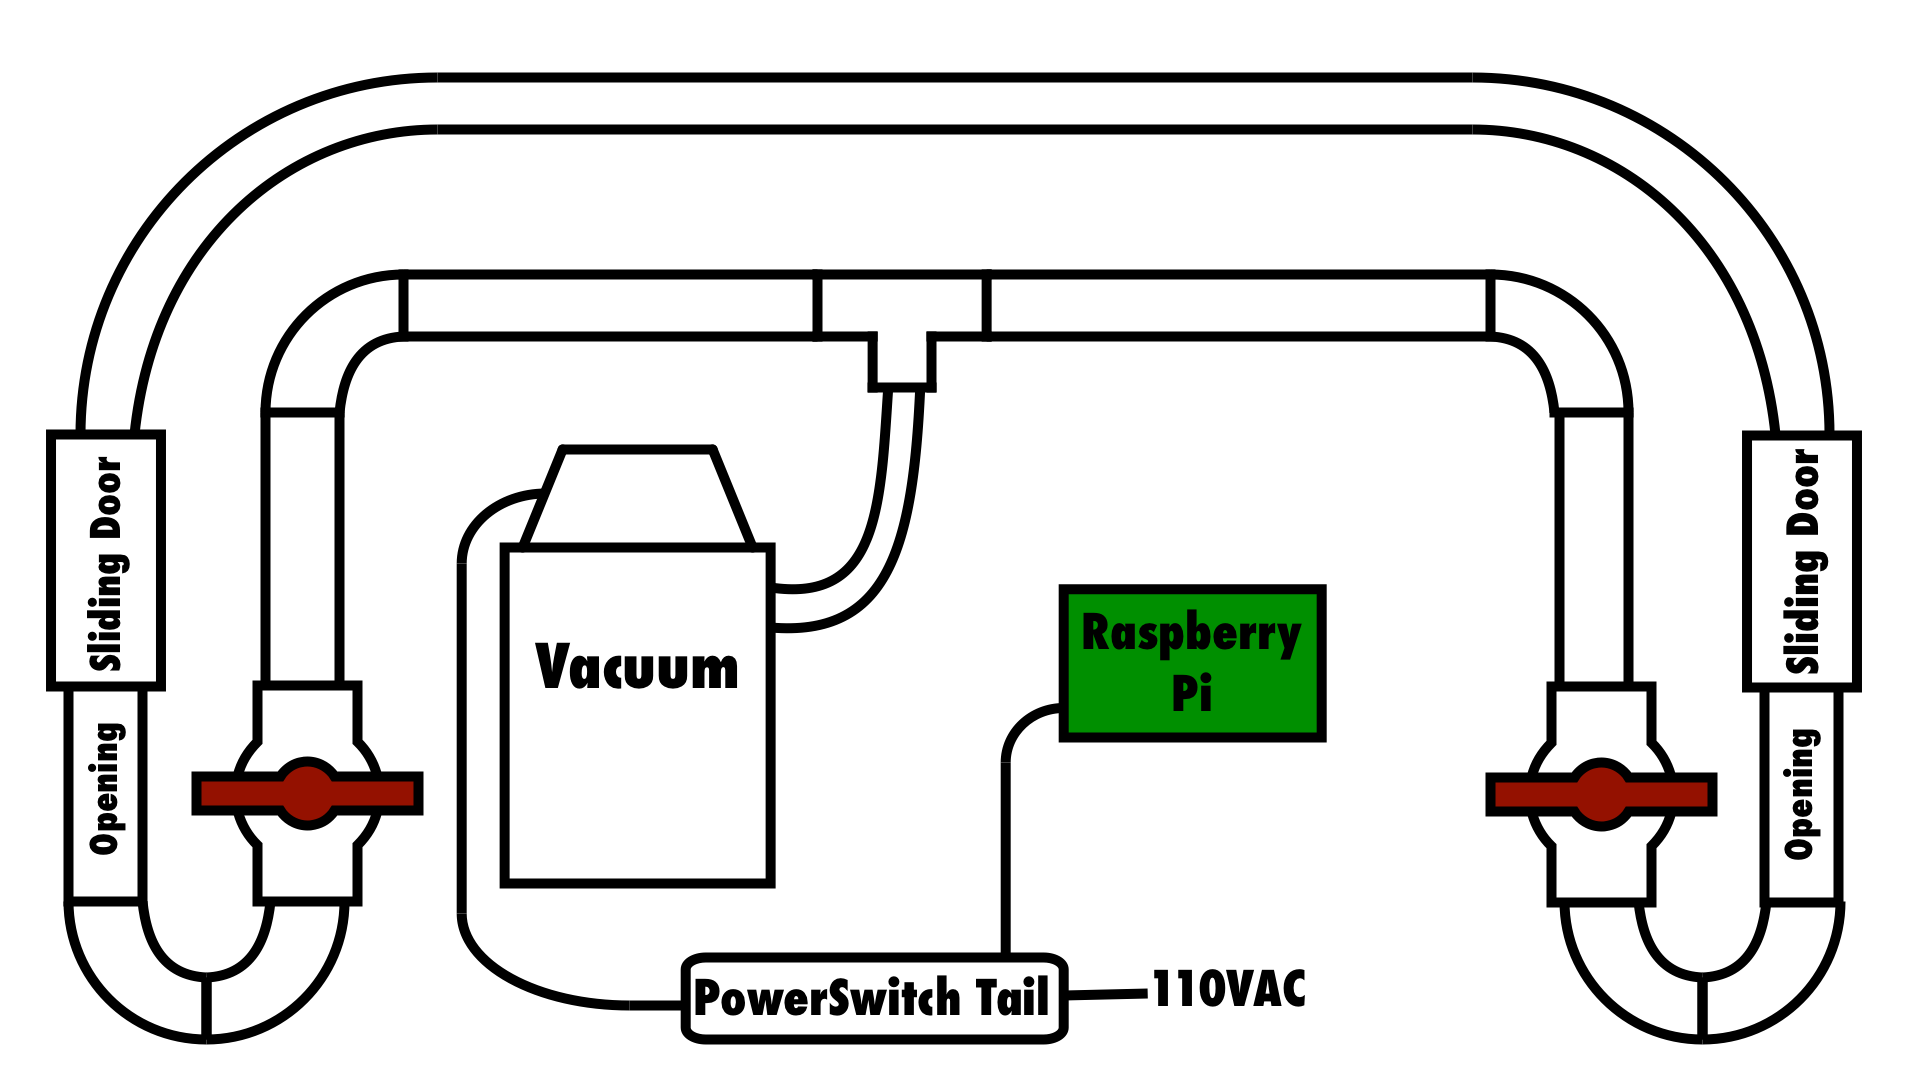 Pneumatic Transport System Diagram